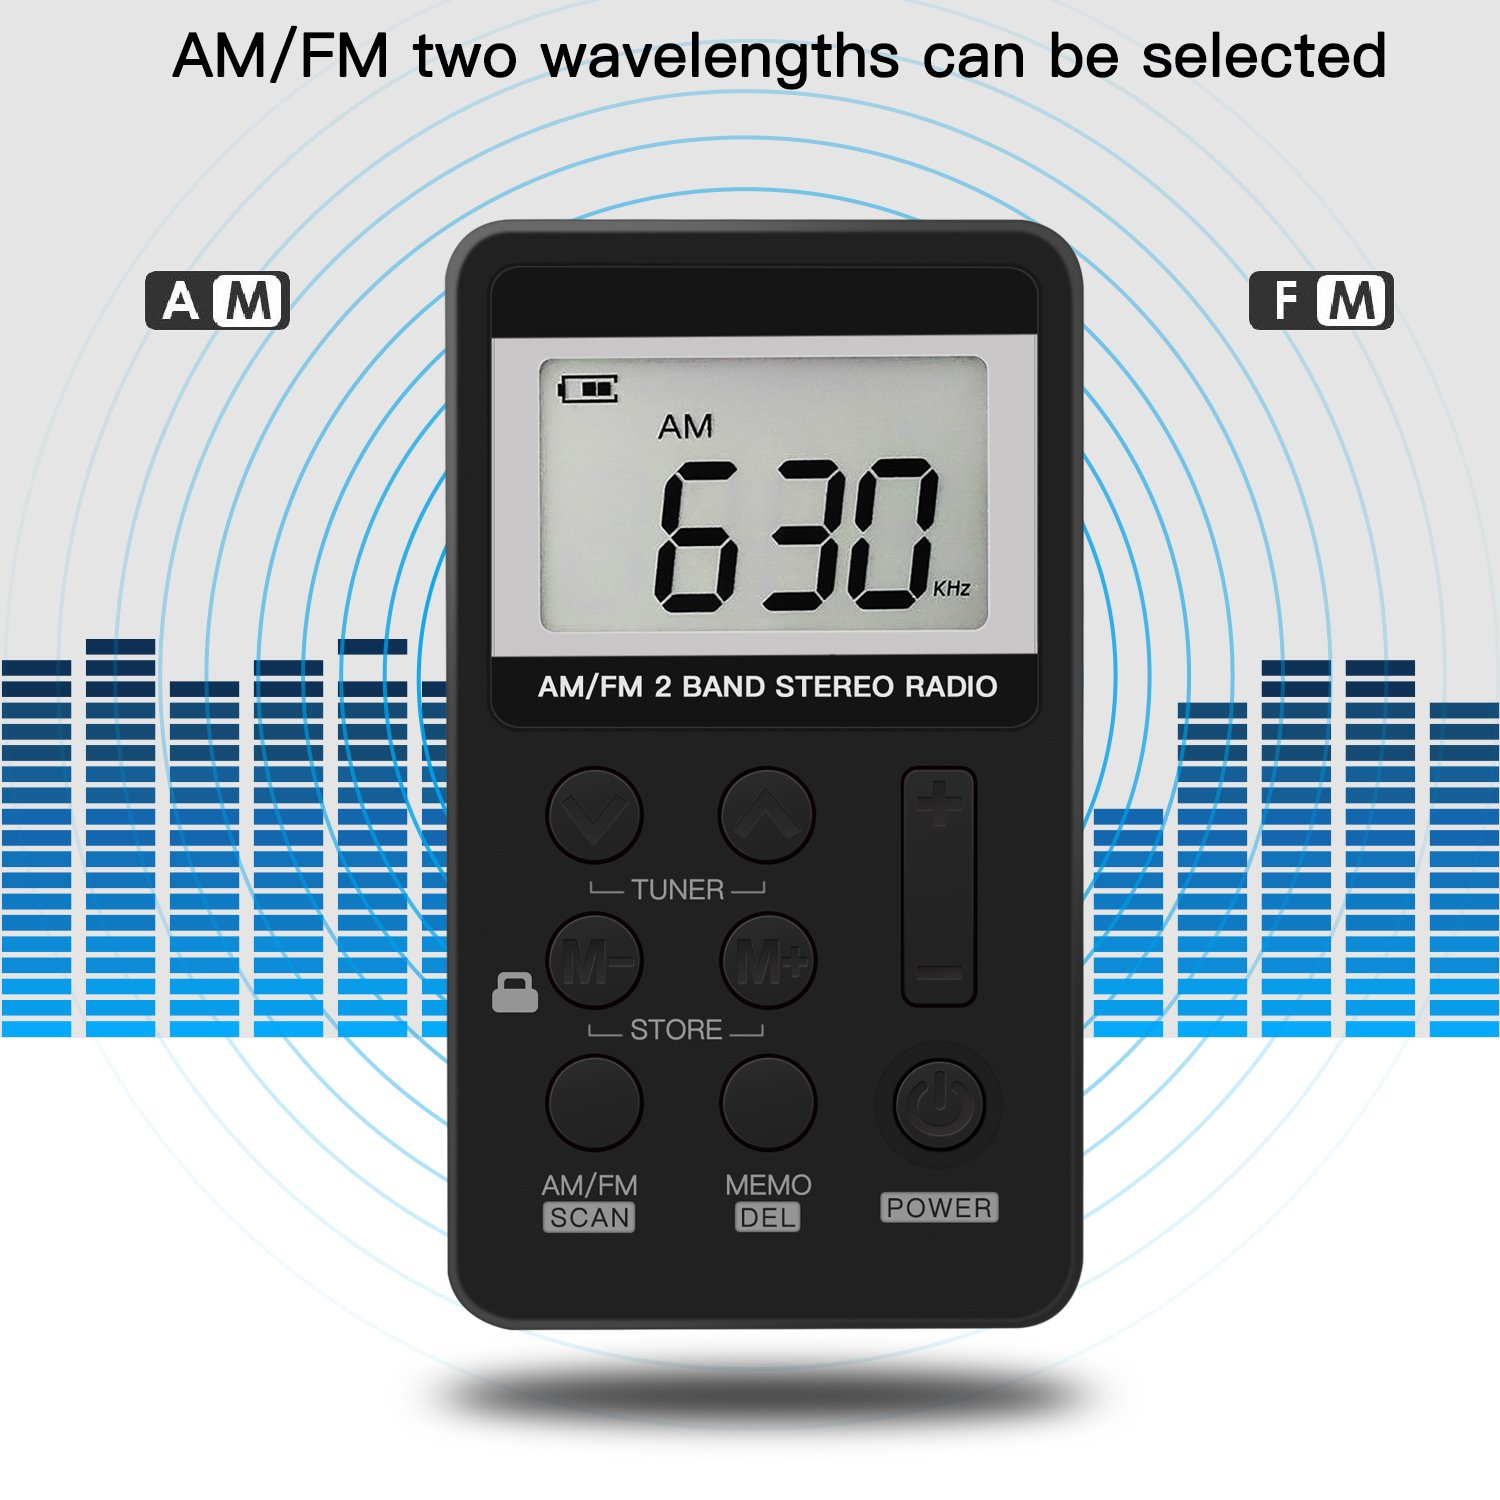 Upgrade Portable Radio, Digital Tuning AM/FM Portable Stereo Personal Radio with Earphone for Walk/Jogging/Gym/Camping by ANTOGOO (Image #5)